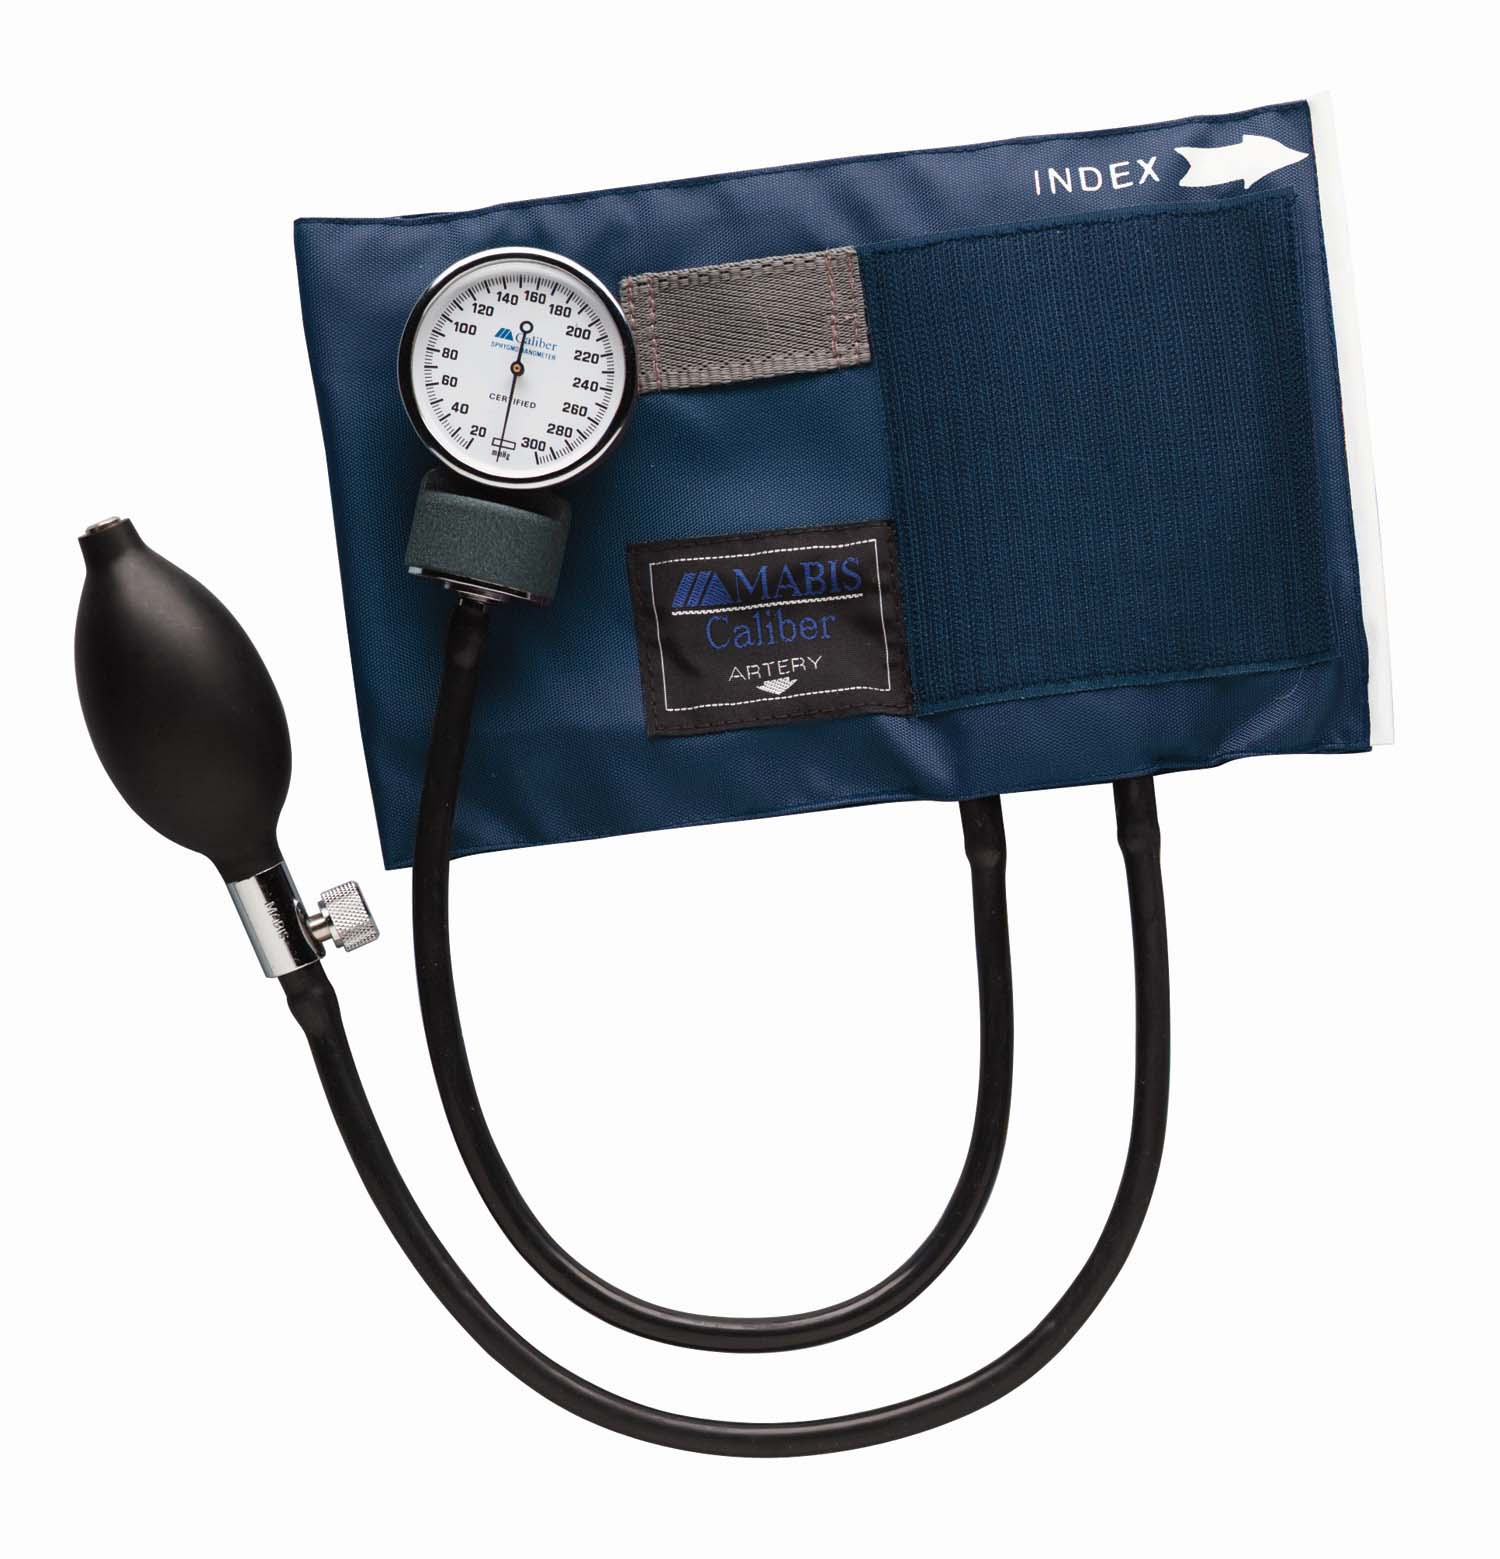 caliber-aneroid-sphygmomanometer-blue-nylon-cuff-infant-01-130-013-lr.jpg